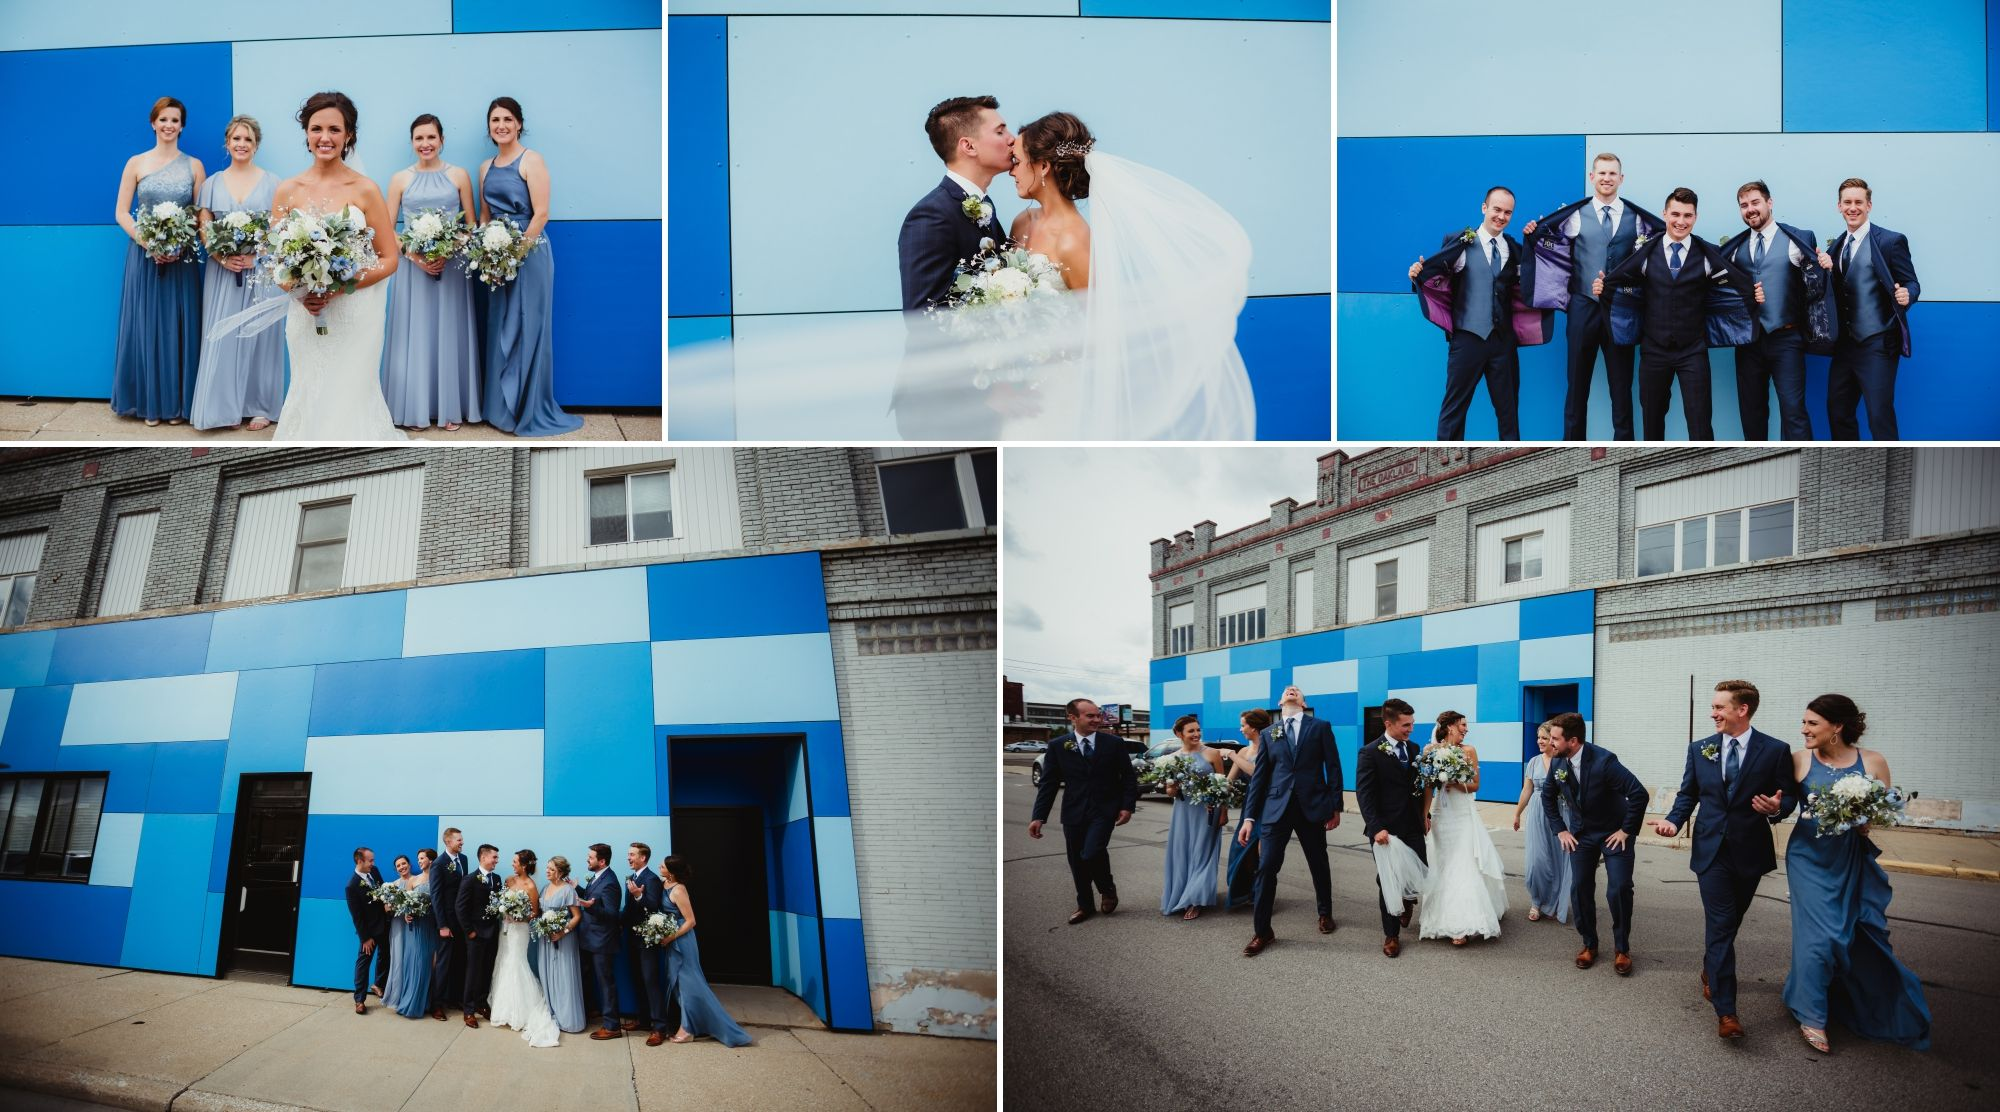 Various wedding party poses in front of a wall with blocks of shades of blue in downtown Bay City.